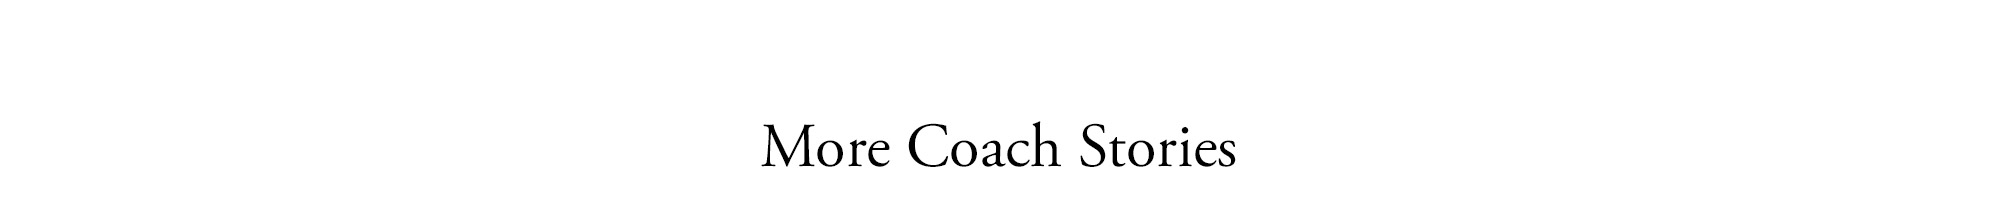 More Coach Stories